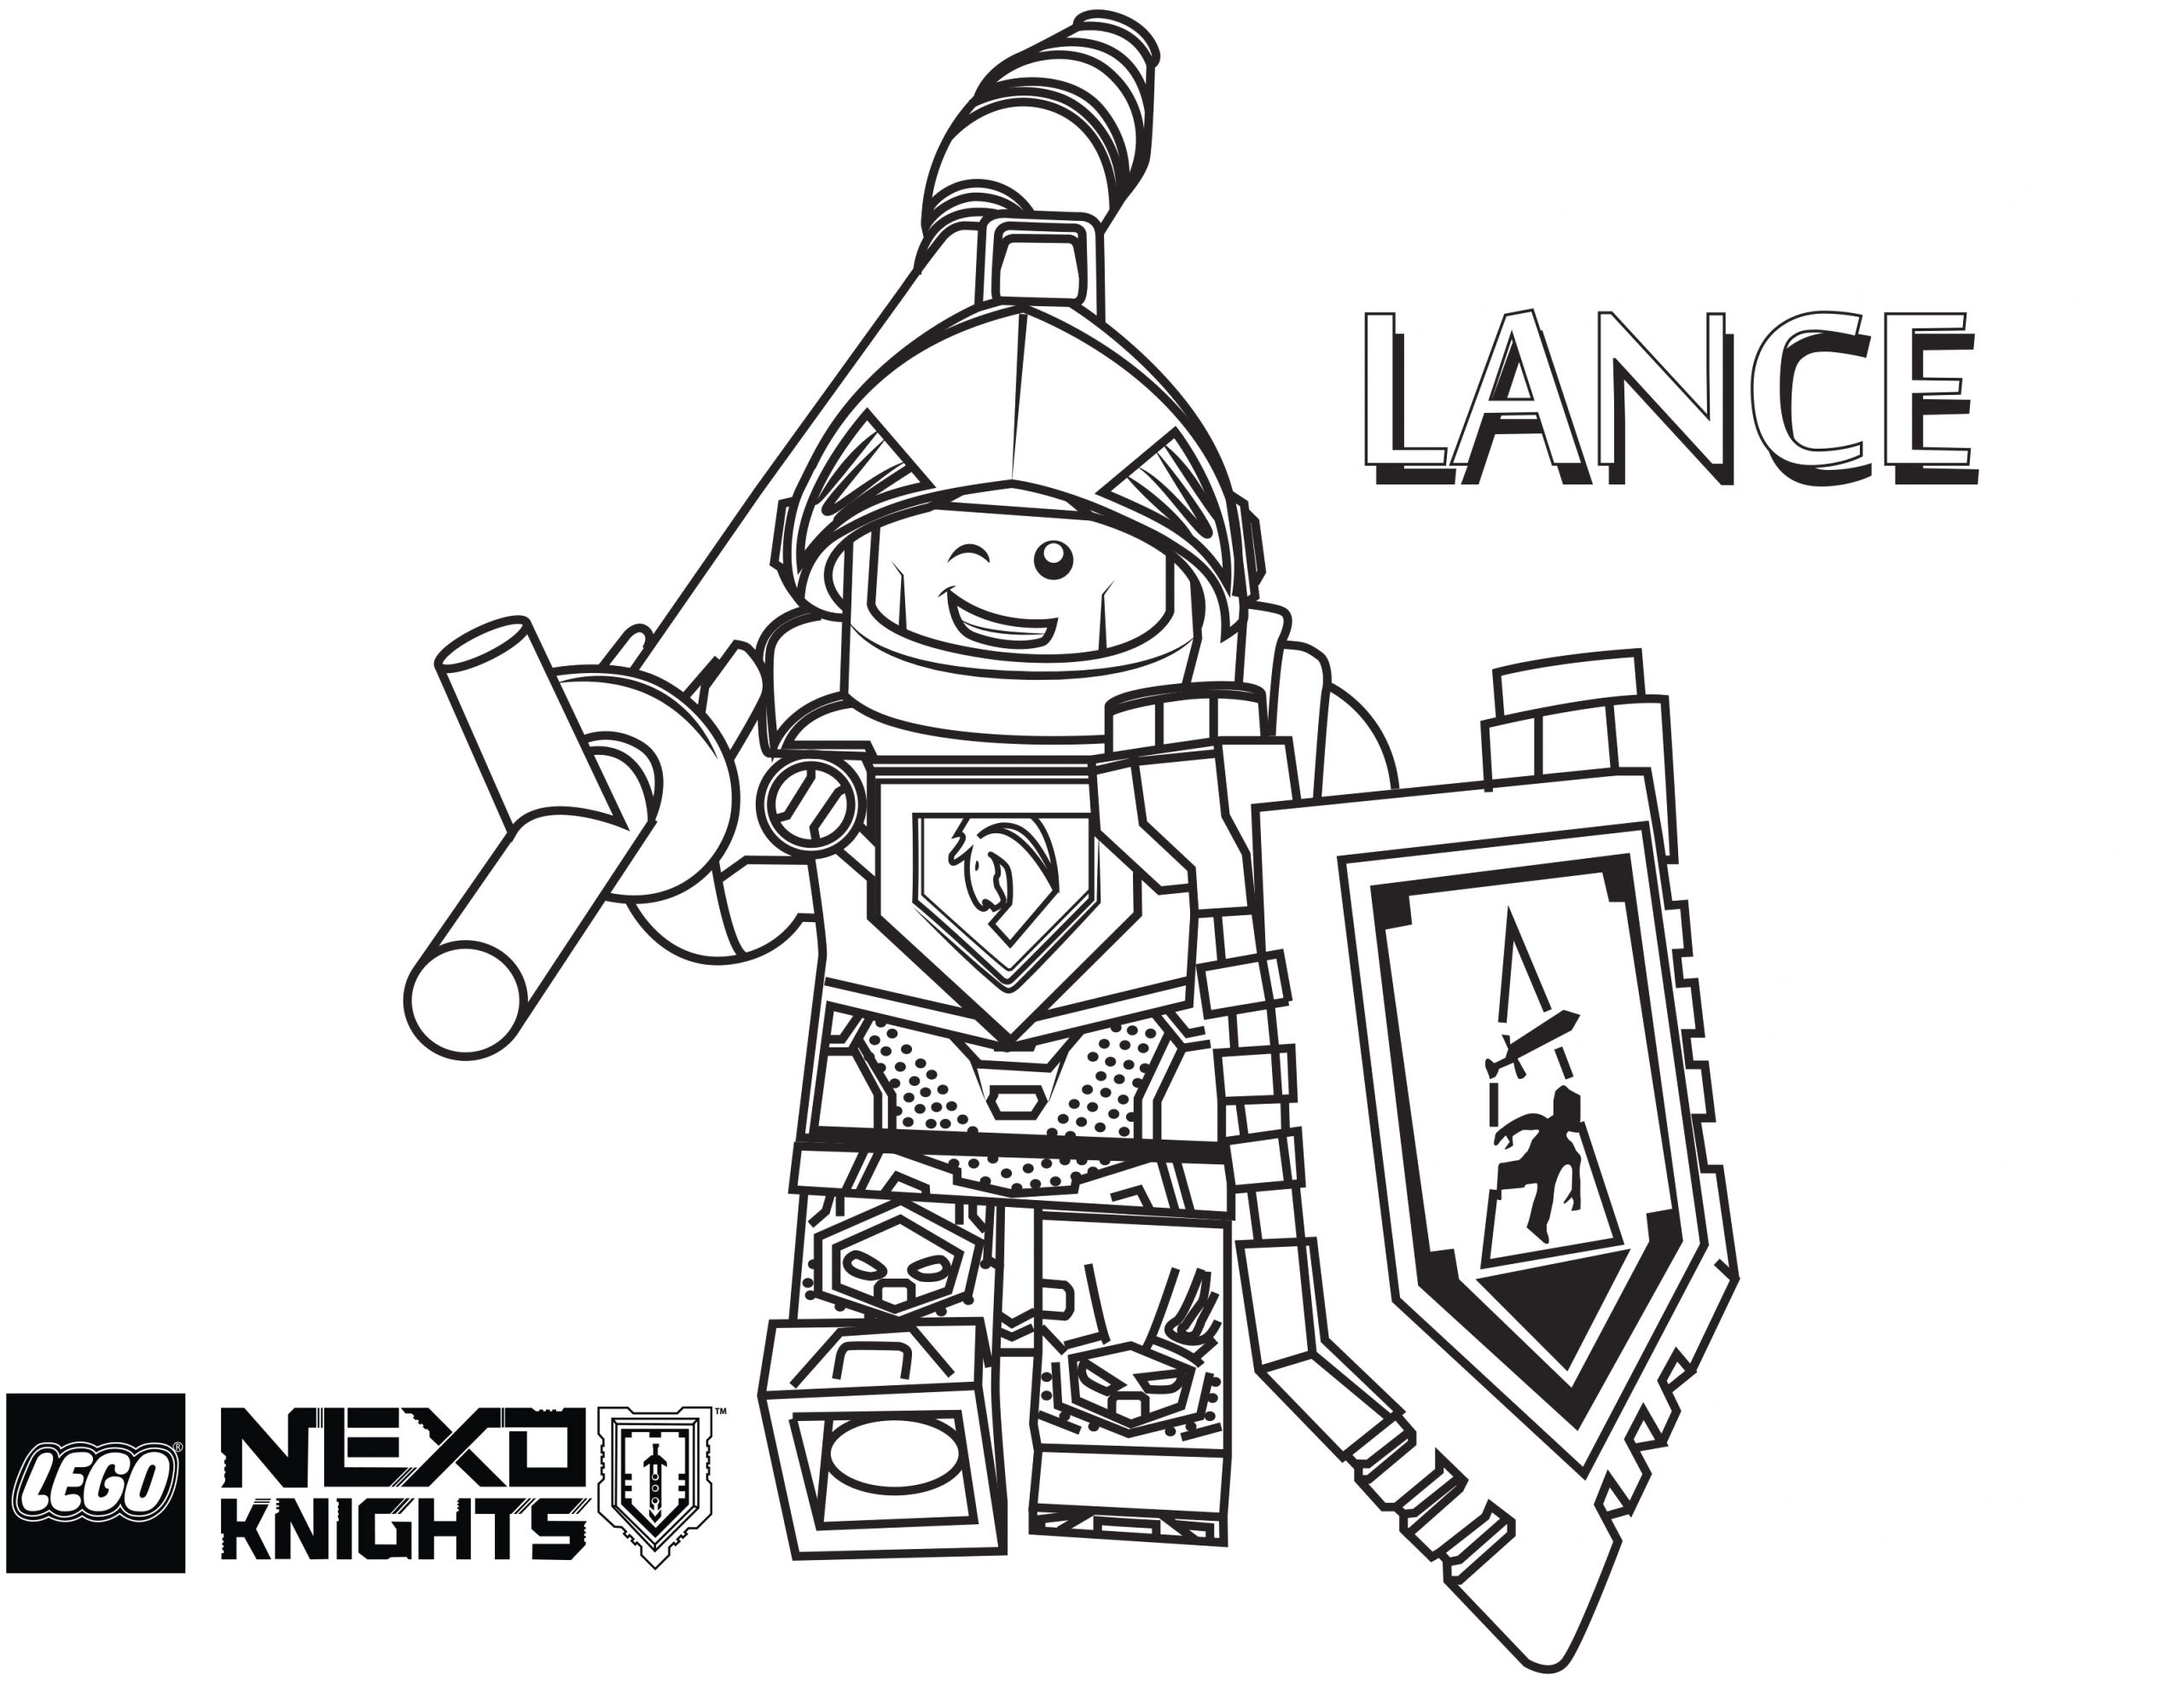 Lego Nexo Knights Coloring Pages to Print Lance Coloring Page Printable Sheet Lego Nexo Knights